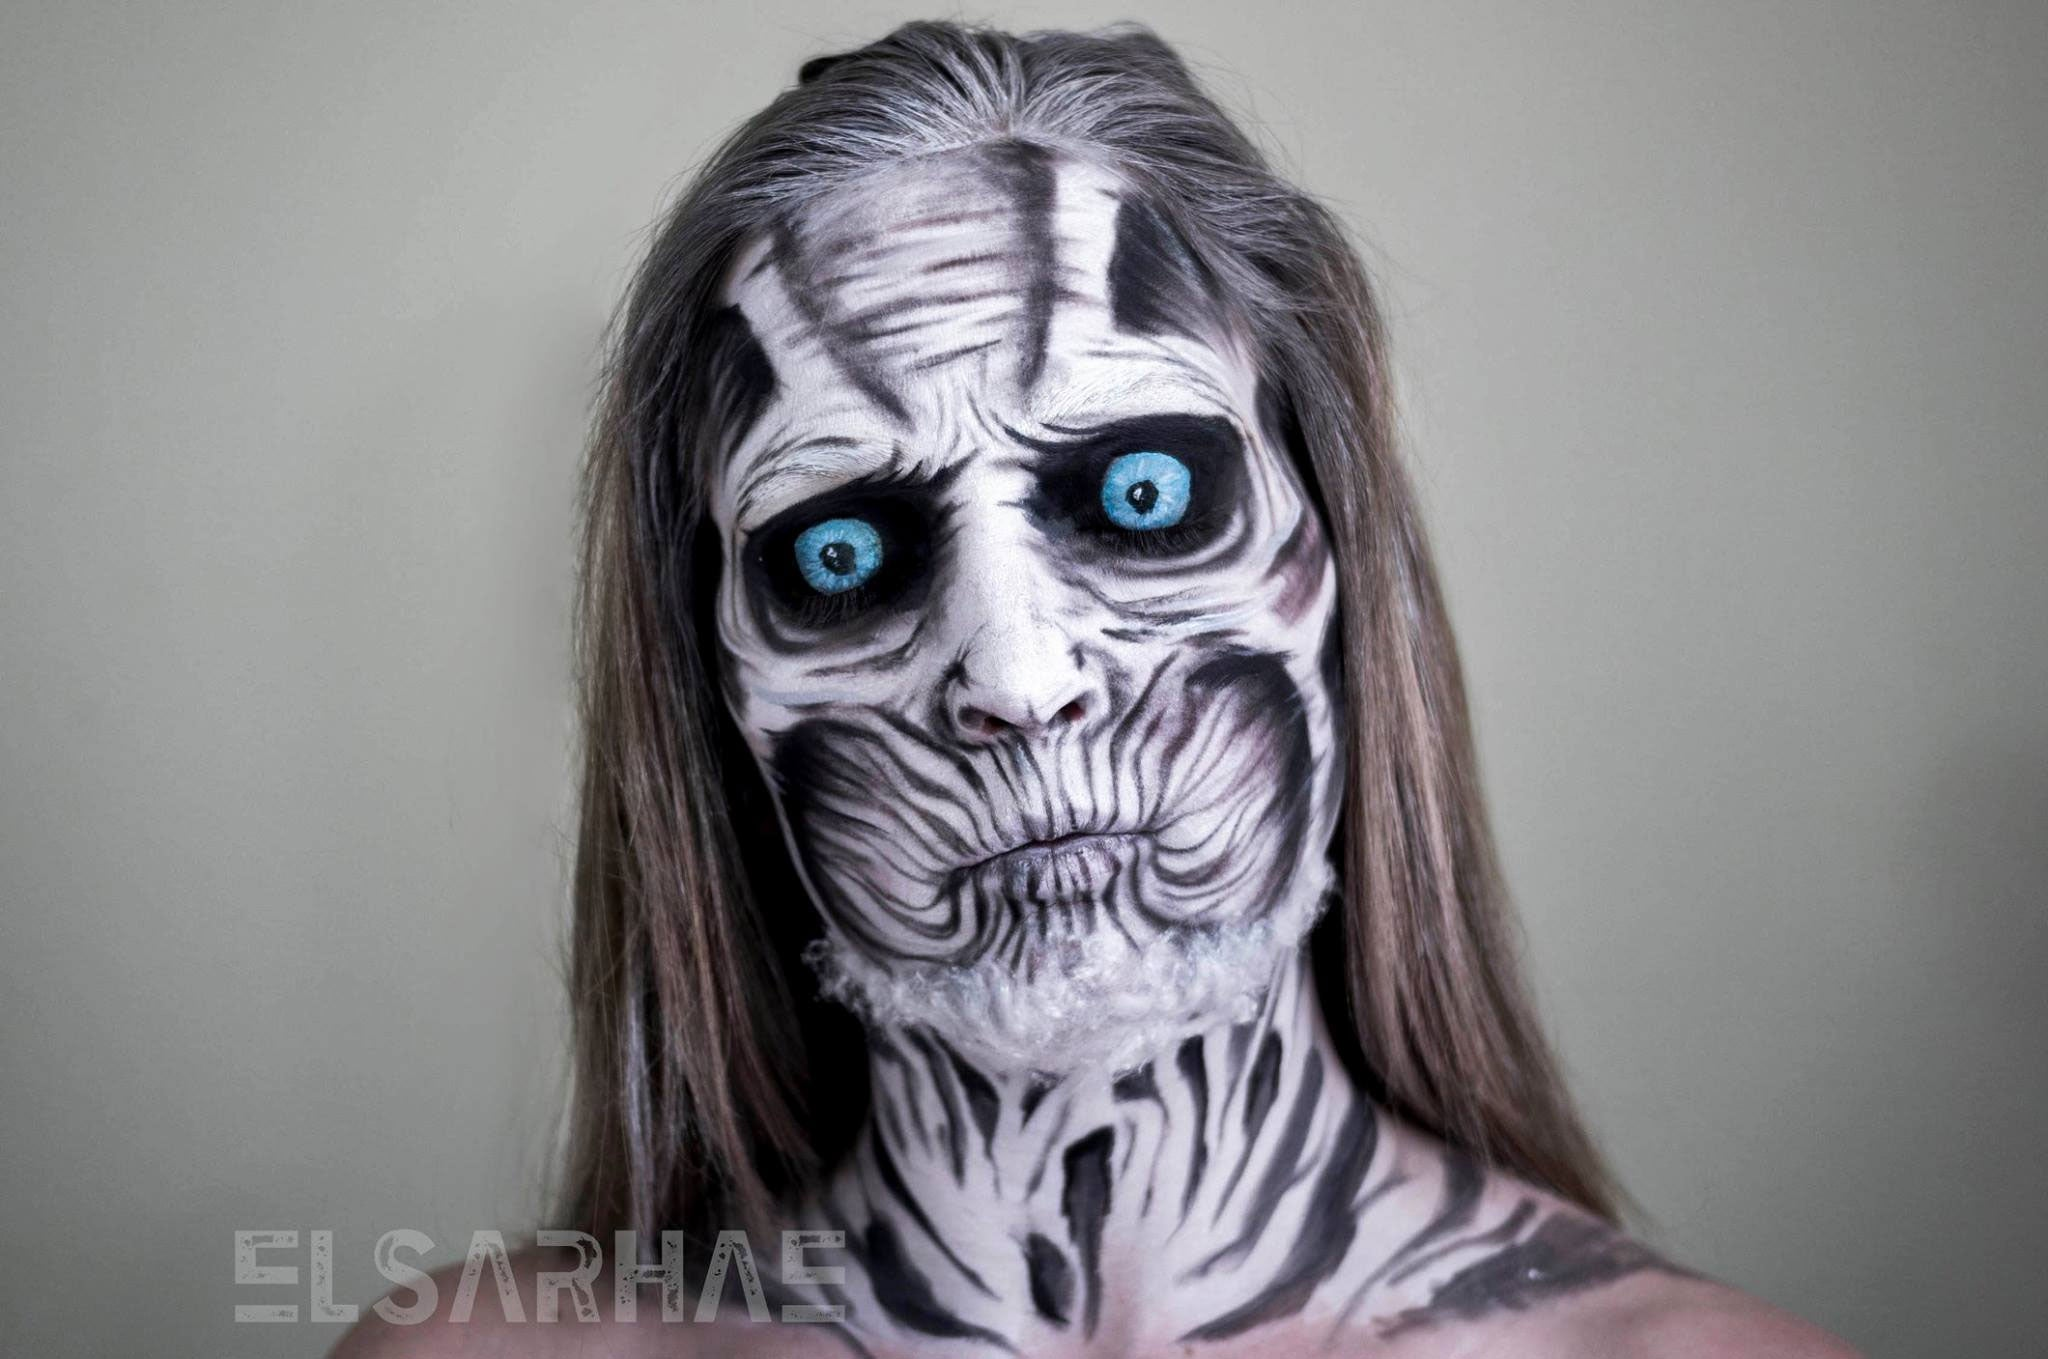 Human Transforms Into White Walker (With Creepy Timelapse)